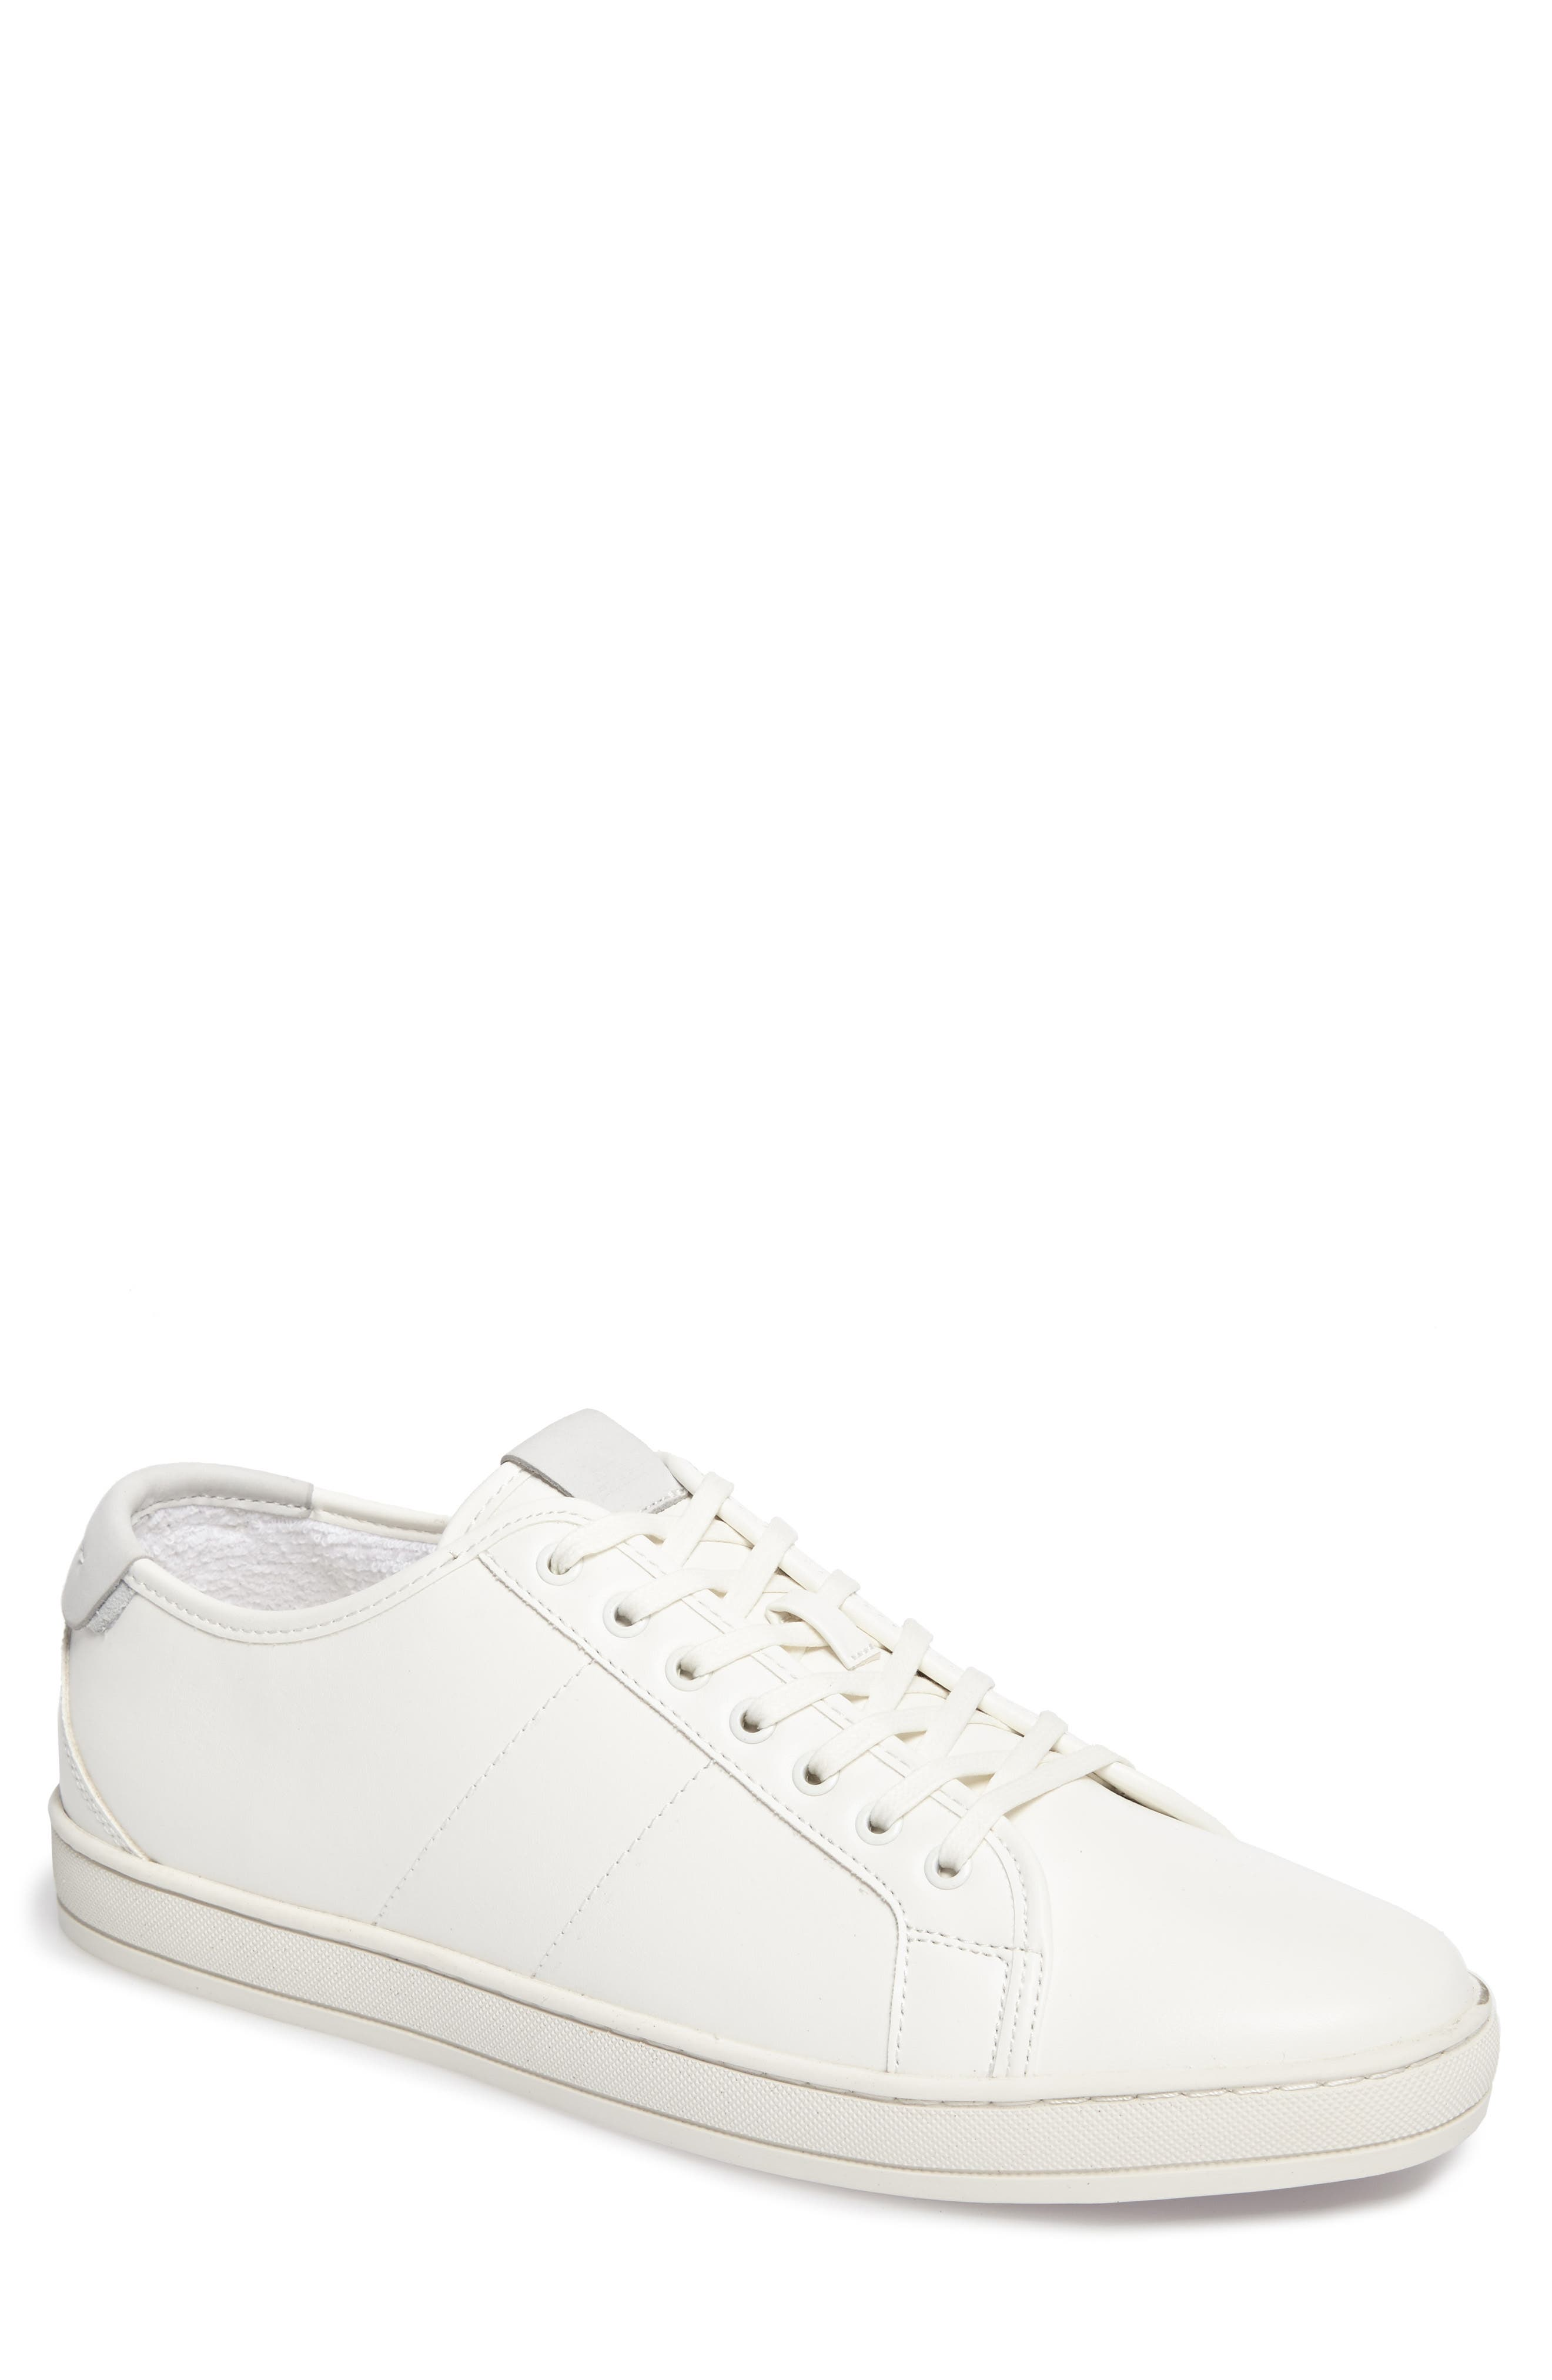 Delello Low-Top Sneaker,                             Main thumbnail 1, color,                             White